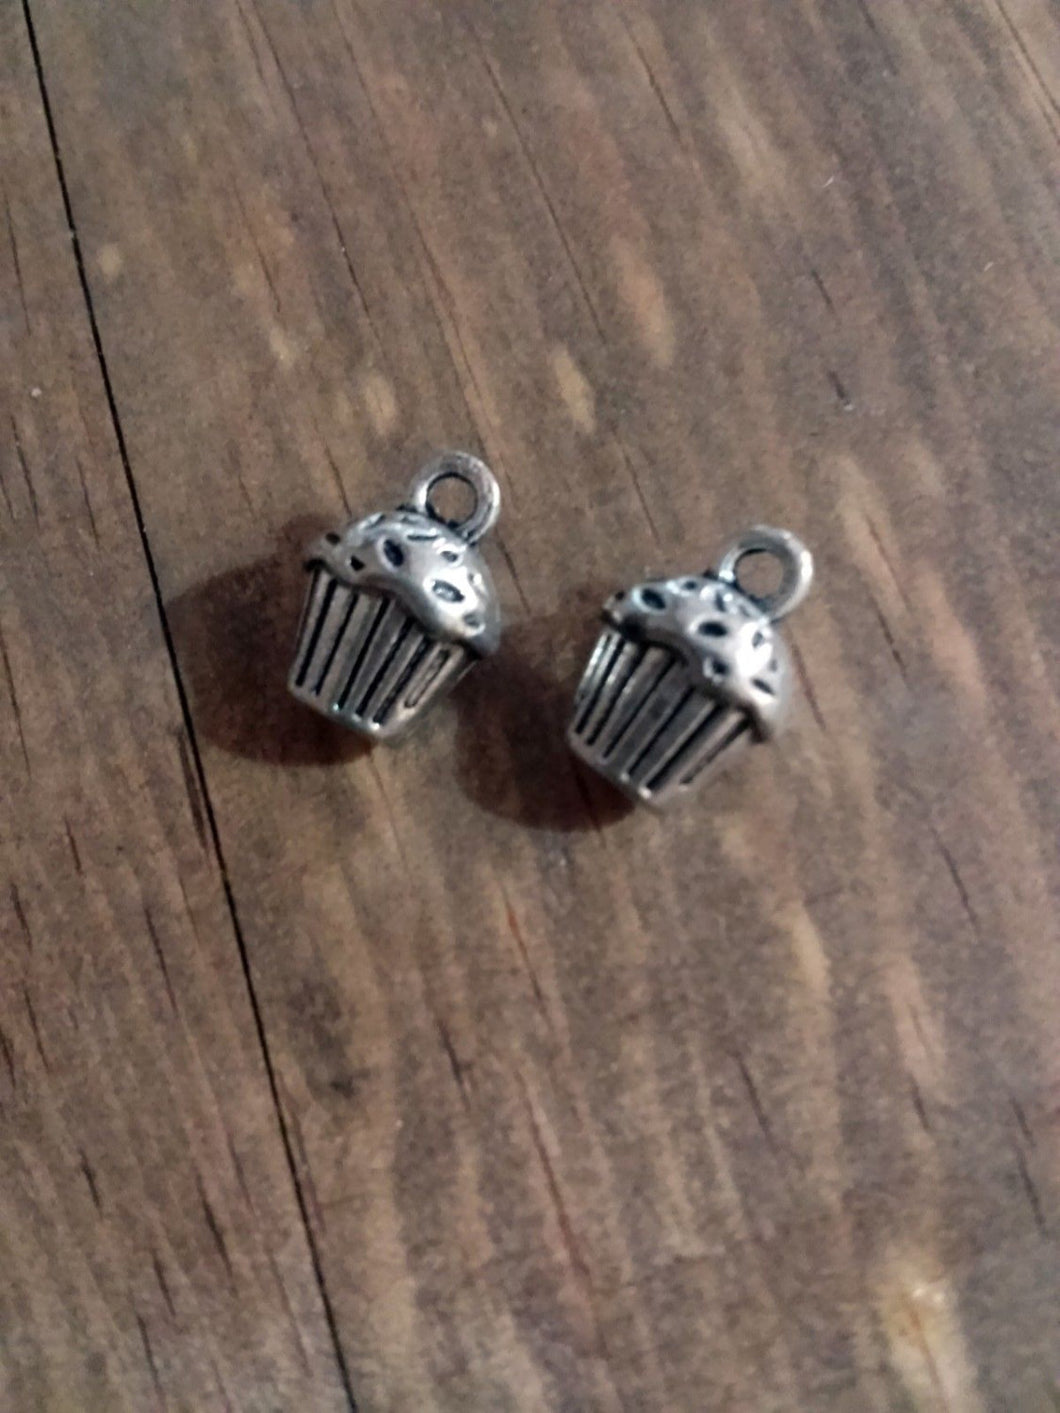 Cupcake Charms Silver Cupcake Charms Baker Charms Birthday Charms 3D Charms Cooking Charms Bakery Charms 4 pieces